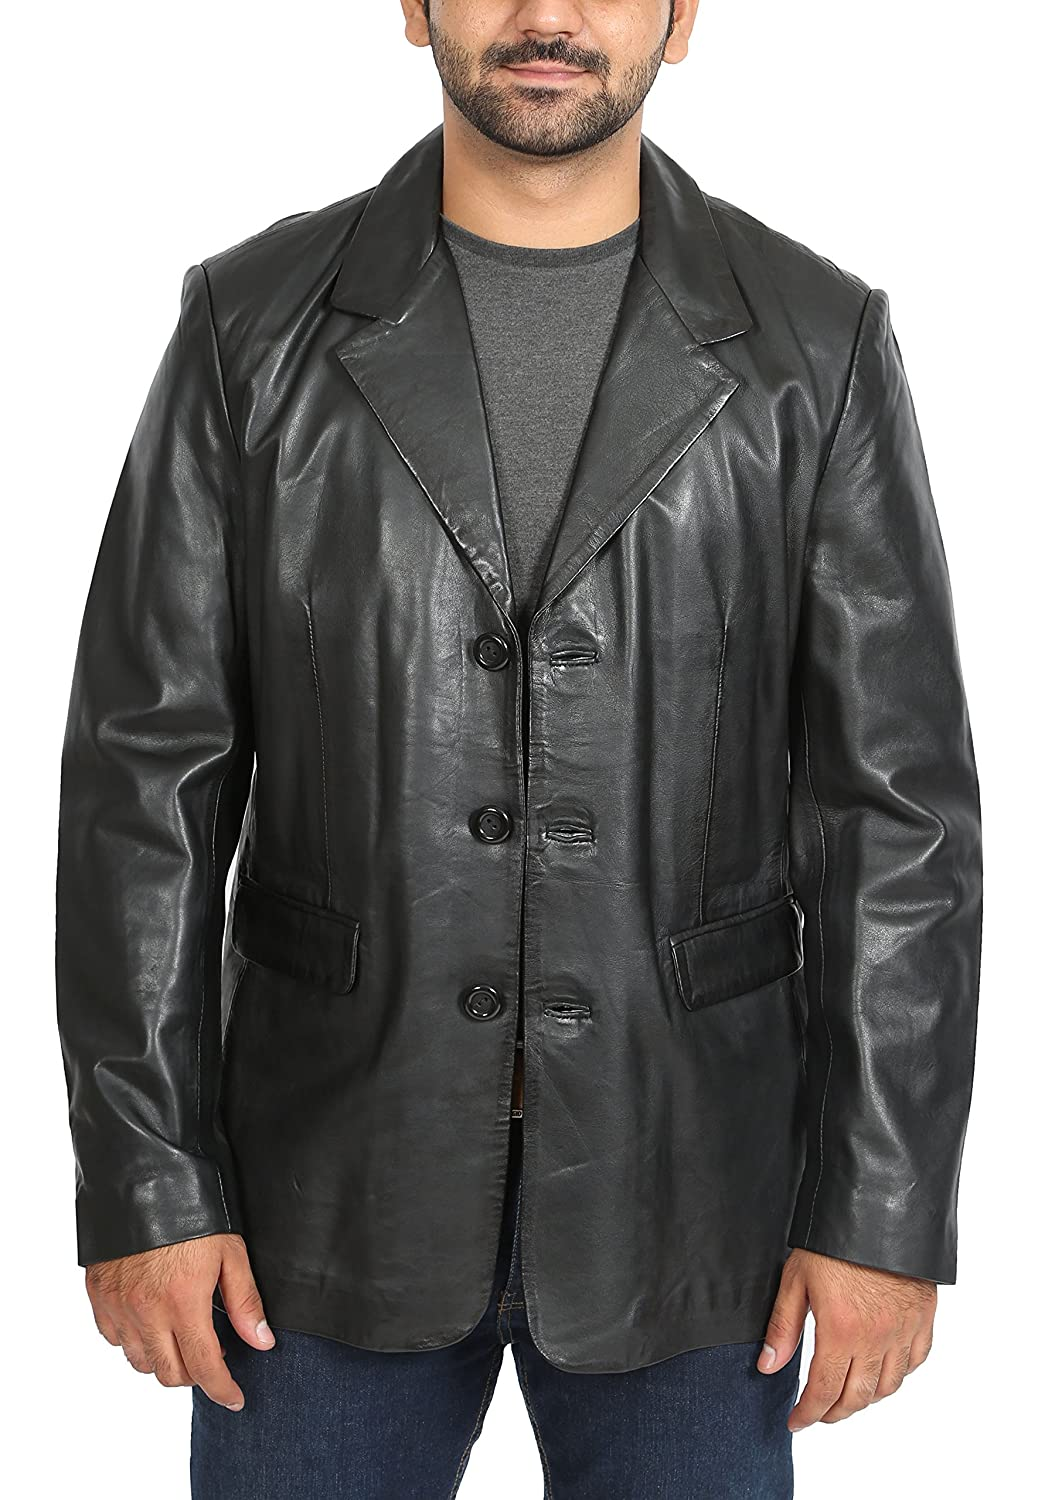 House of Leather Mens Leather Classic Blazer Suit Jacket Three Button Notched Lapel Carter Black at Amazon Mens Clothing store: